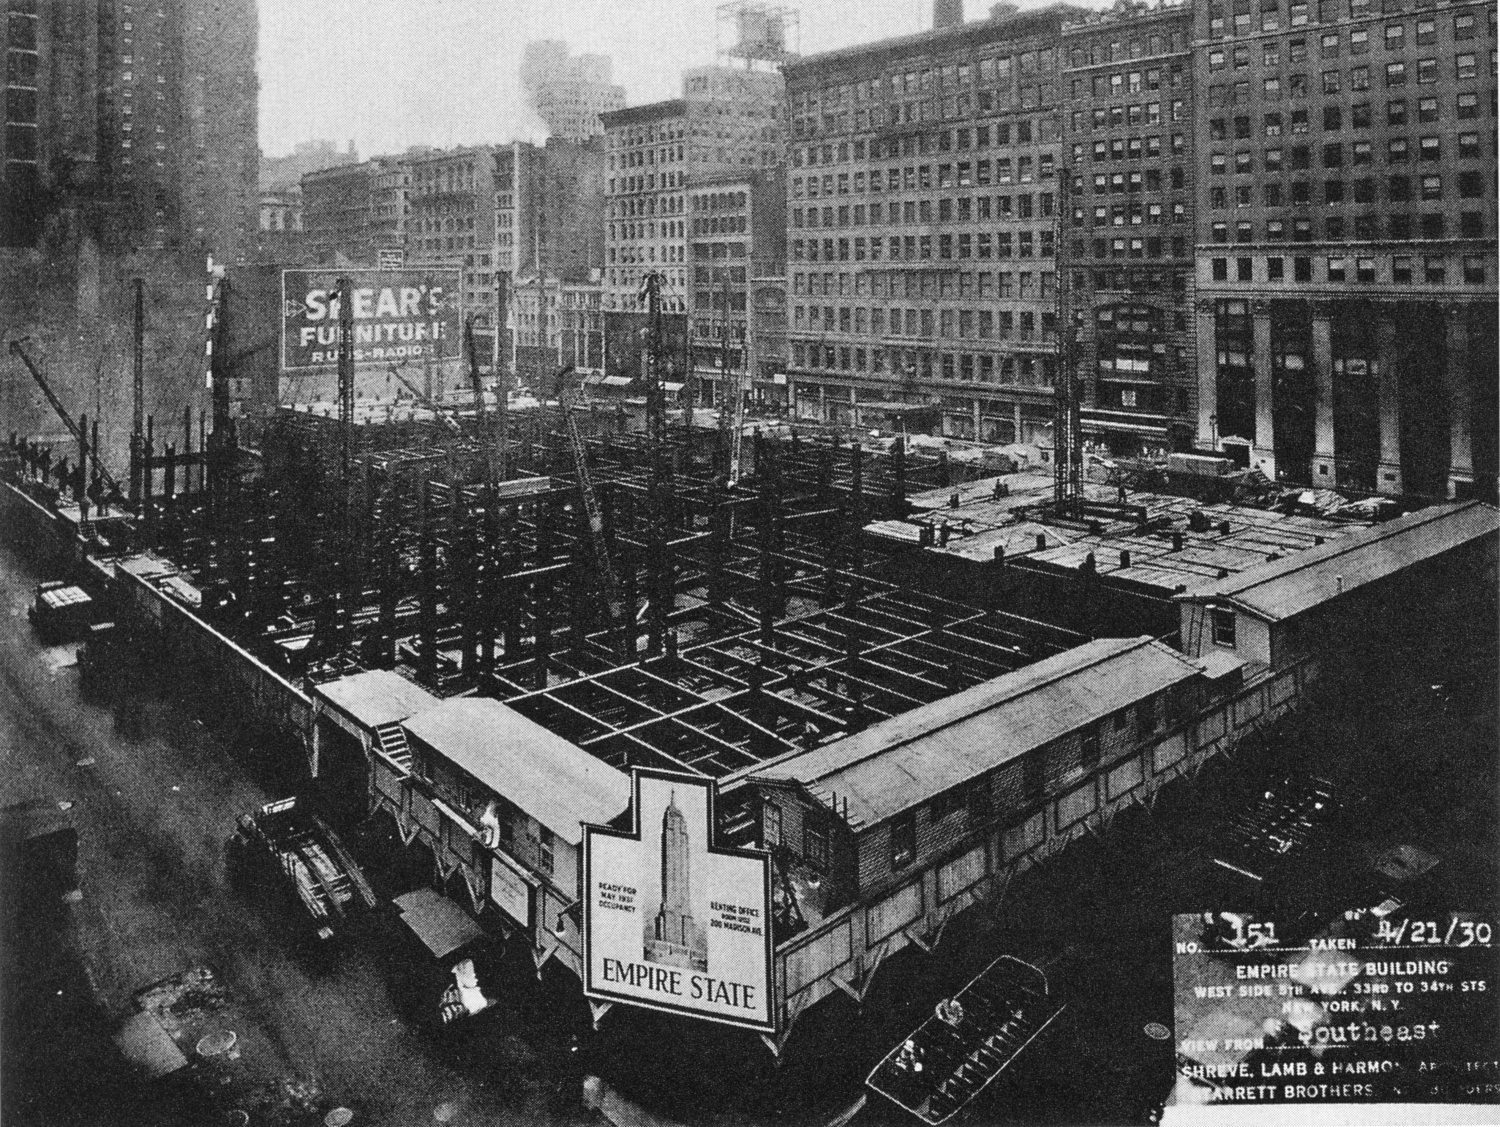 Empire State Building under construction, 1930